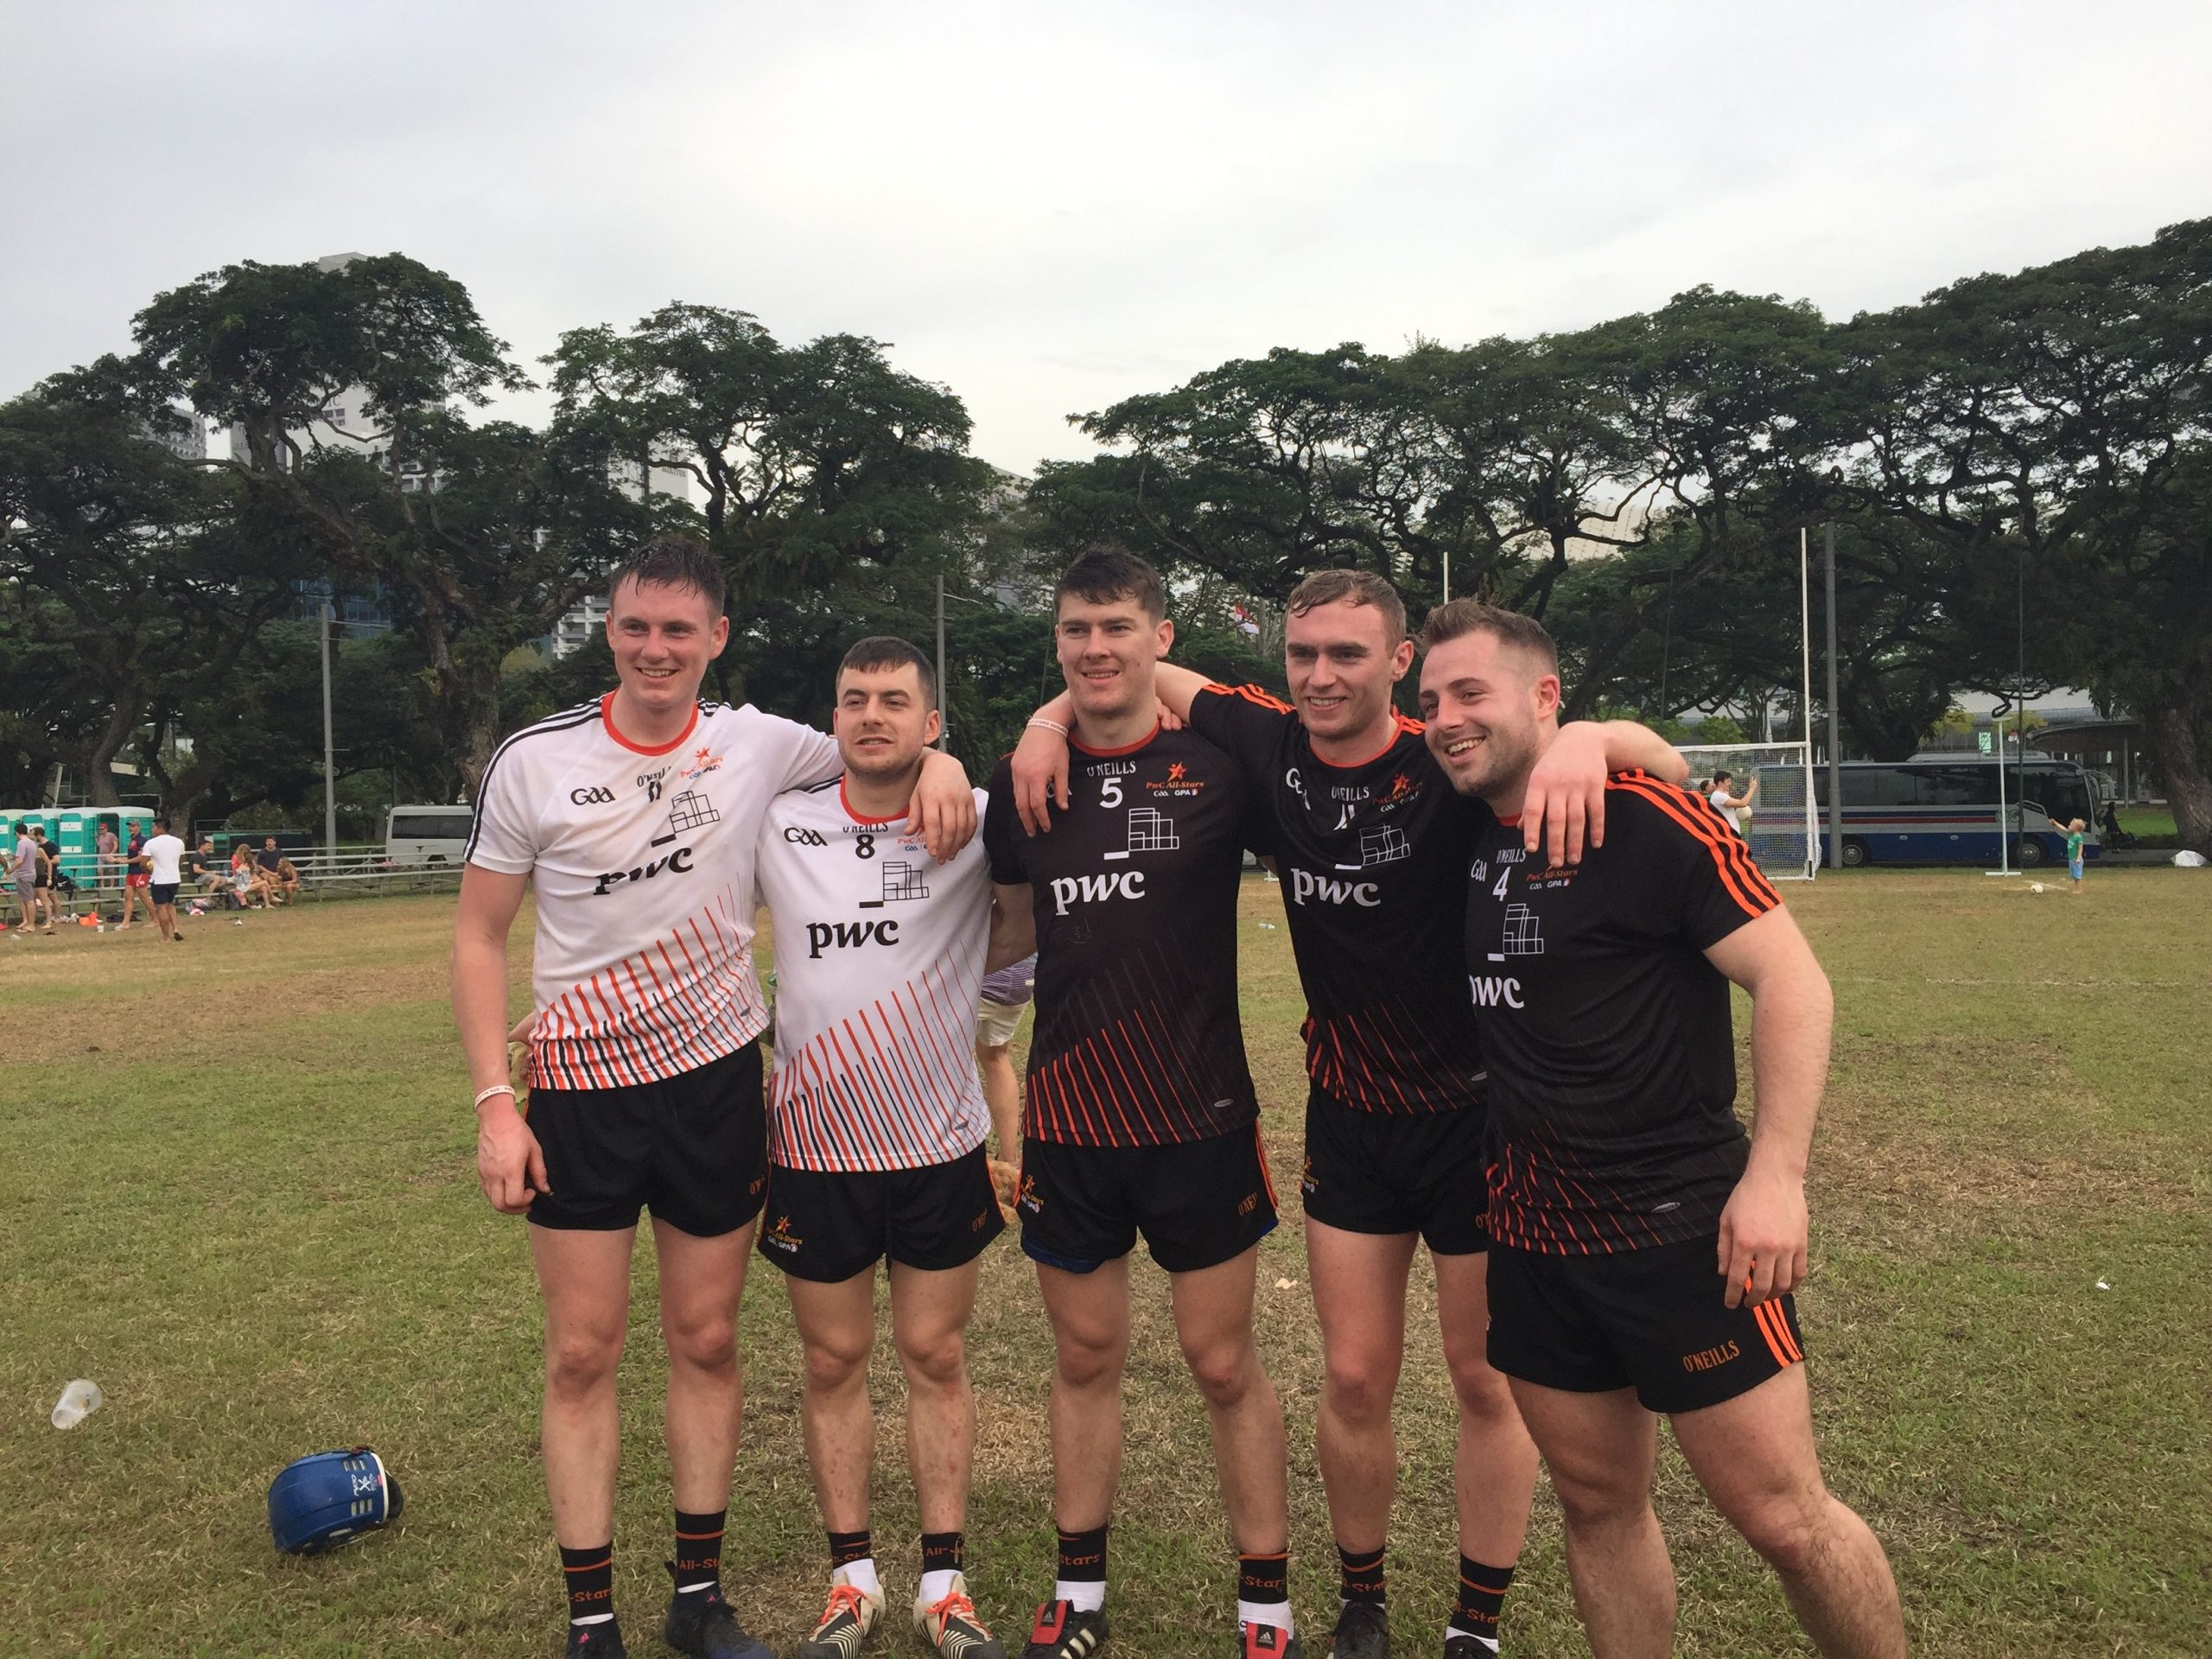 Waterford GAA stars all perform well in All Star game in Singapore.